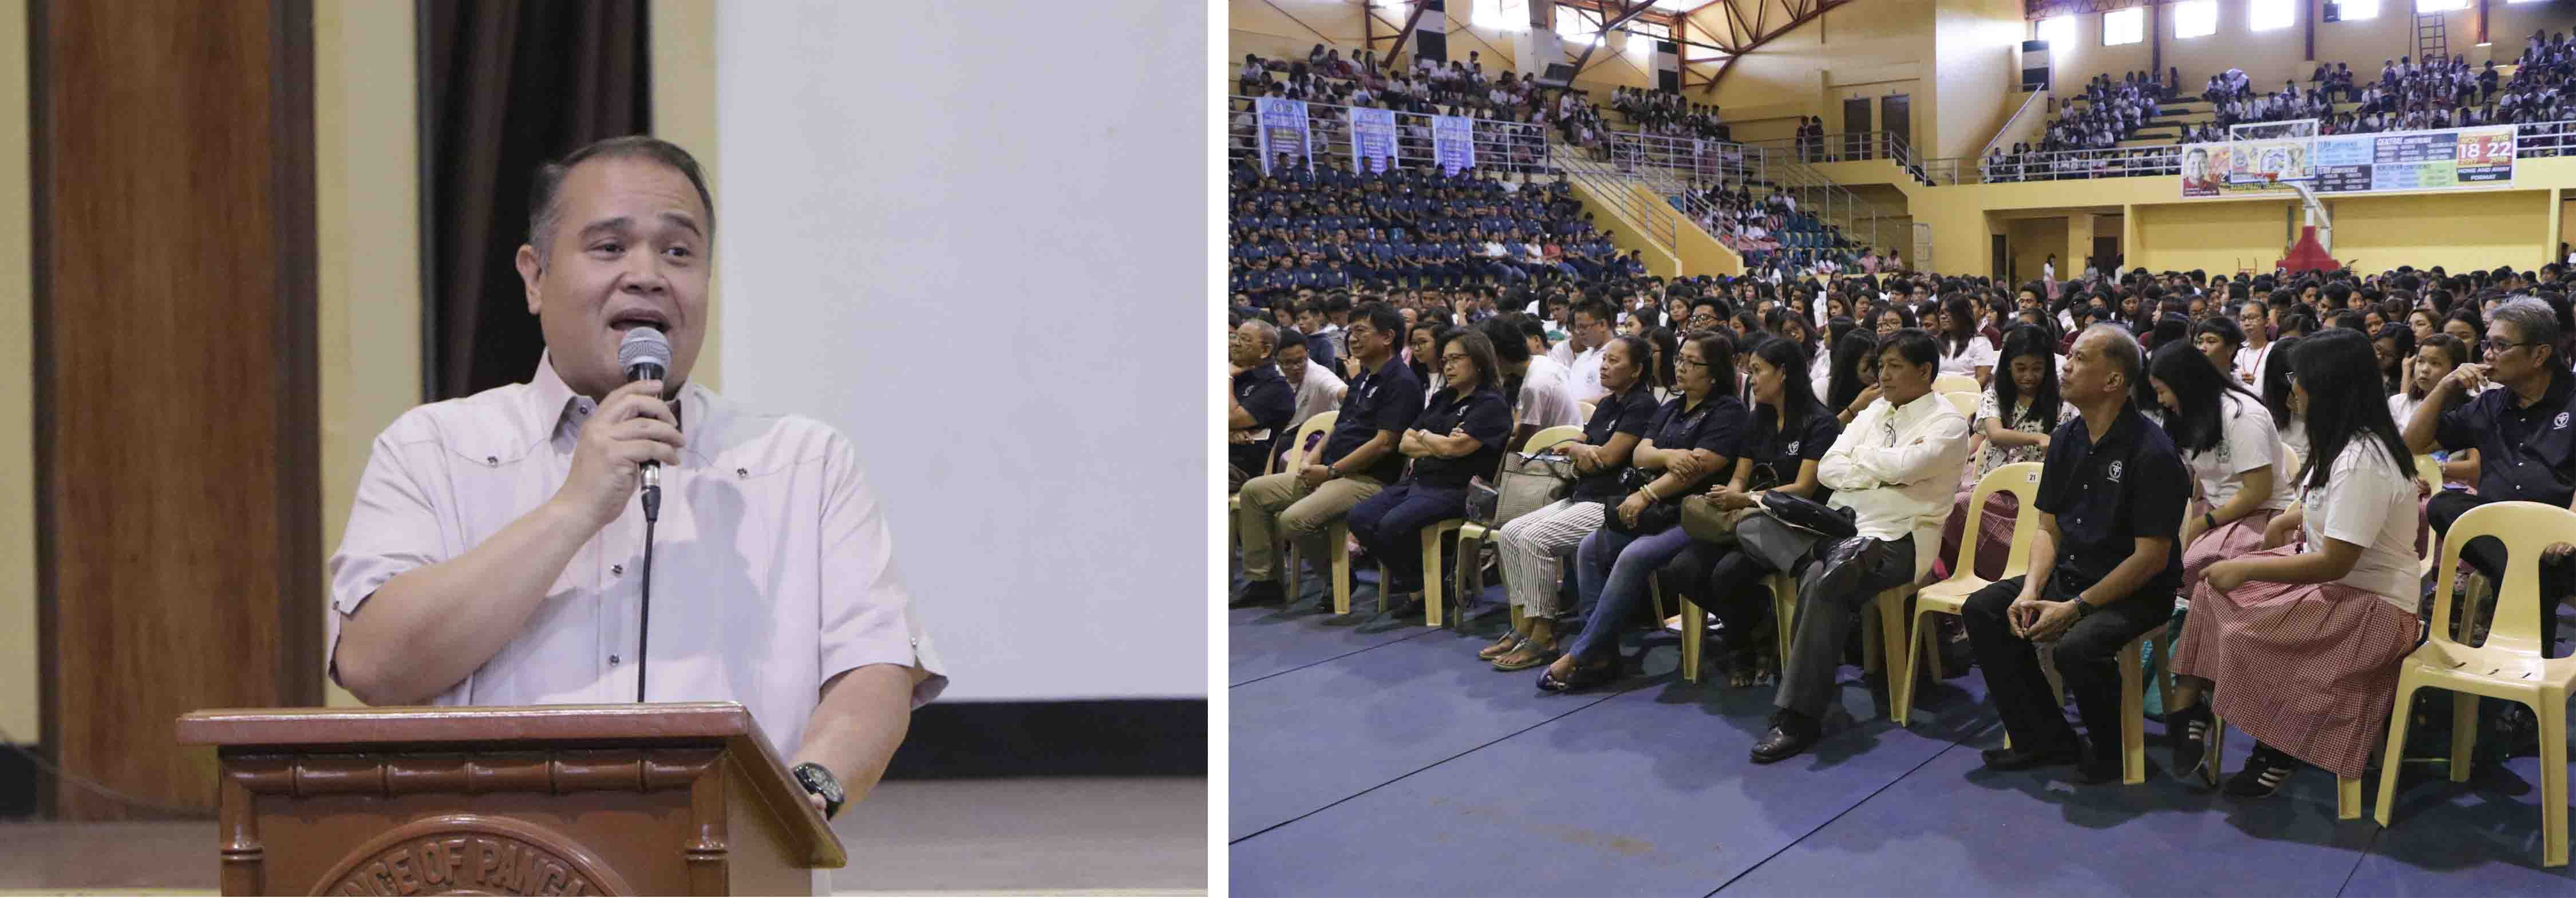 Vice Governor Jose Ferdinand Z. Calimlim, Jr. urges Pangasinenses, young and old alike, to meditate during the sacred time of lent as he joins the 1st Provincial Lenten Recollection and Marketplace Evangelization Program held at the Narciso Ramos Sports and Civic Center (NRSCC) Gymnasium on March 14.